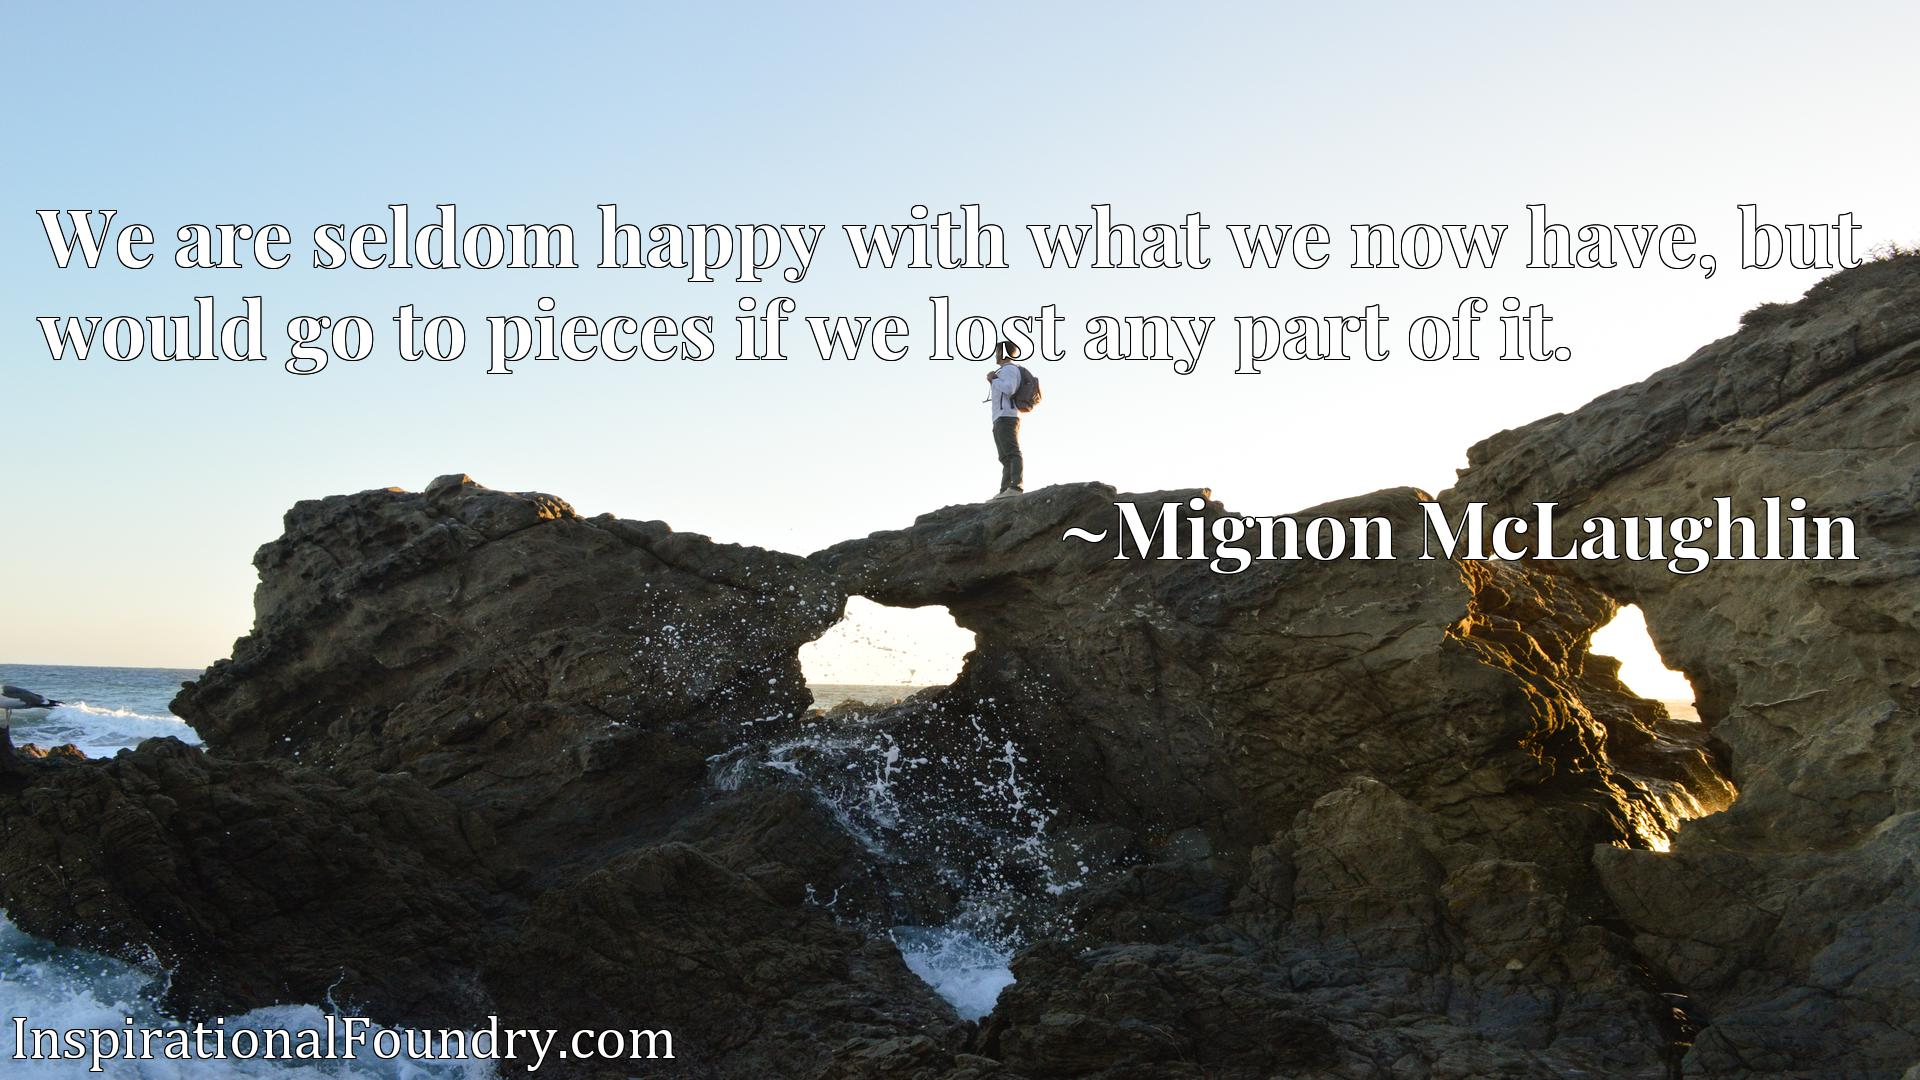 We are seldom happy with what we now have, but would go to pieces if we lost any part of it.